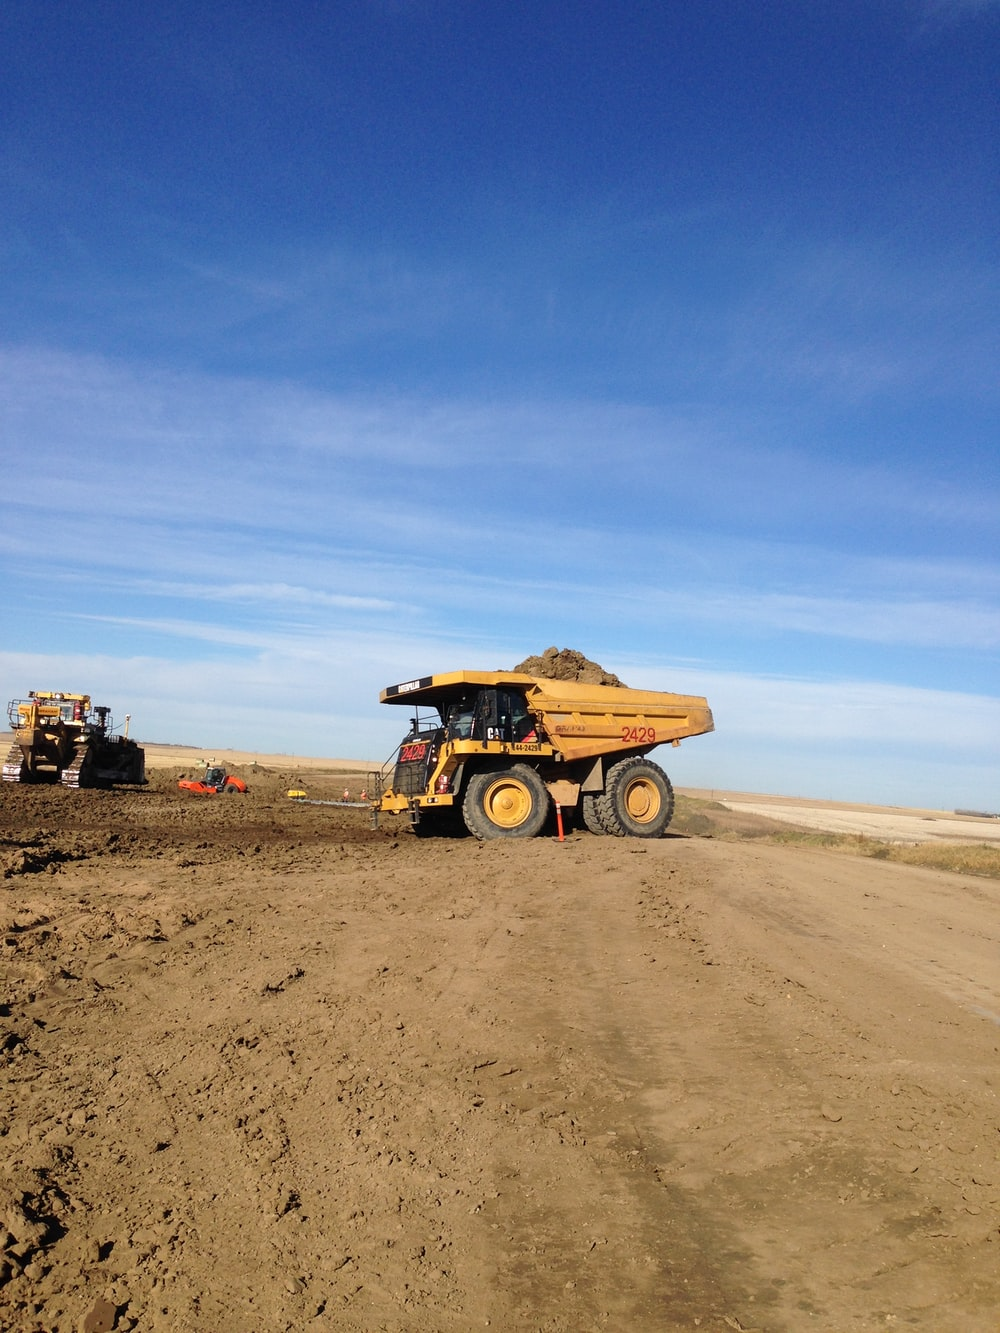 brown utility truck on brown sand under blue sky during daytime